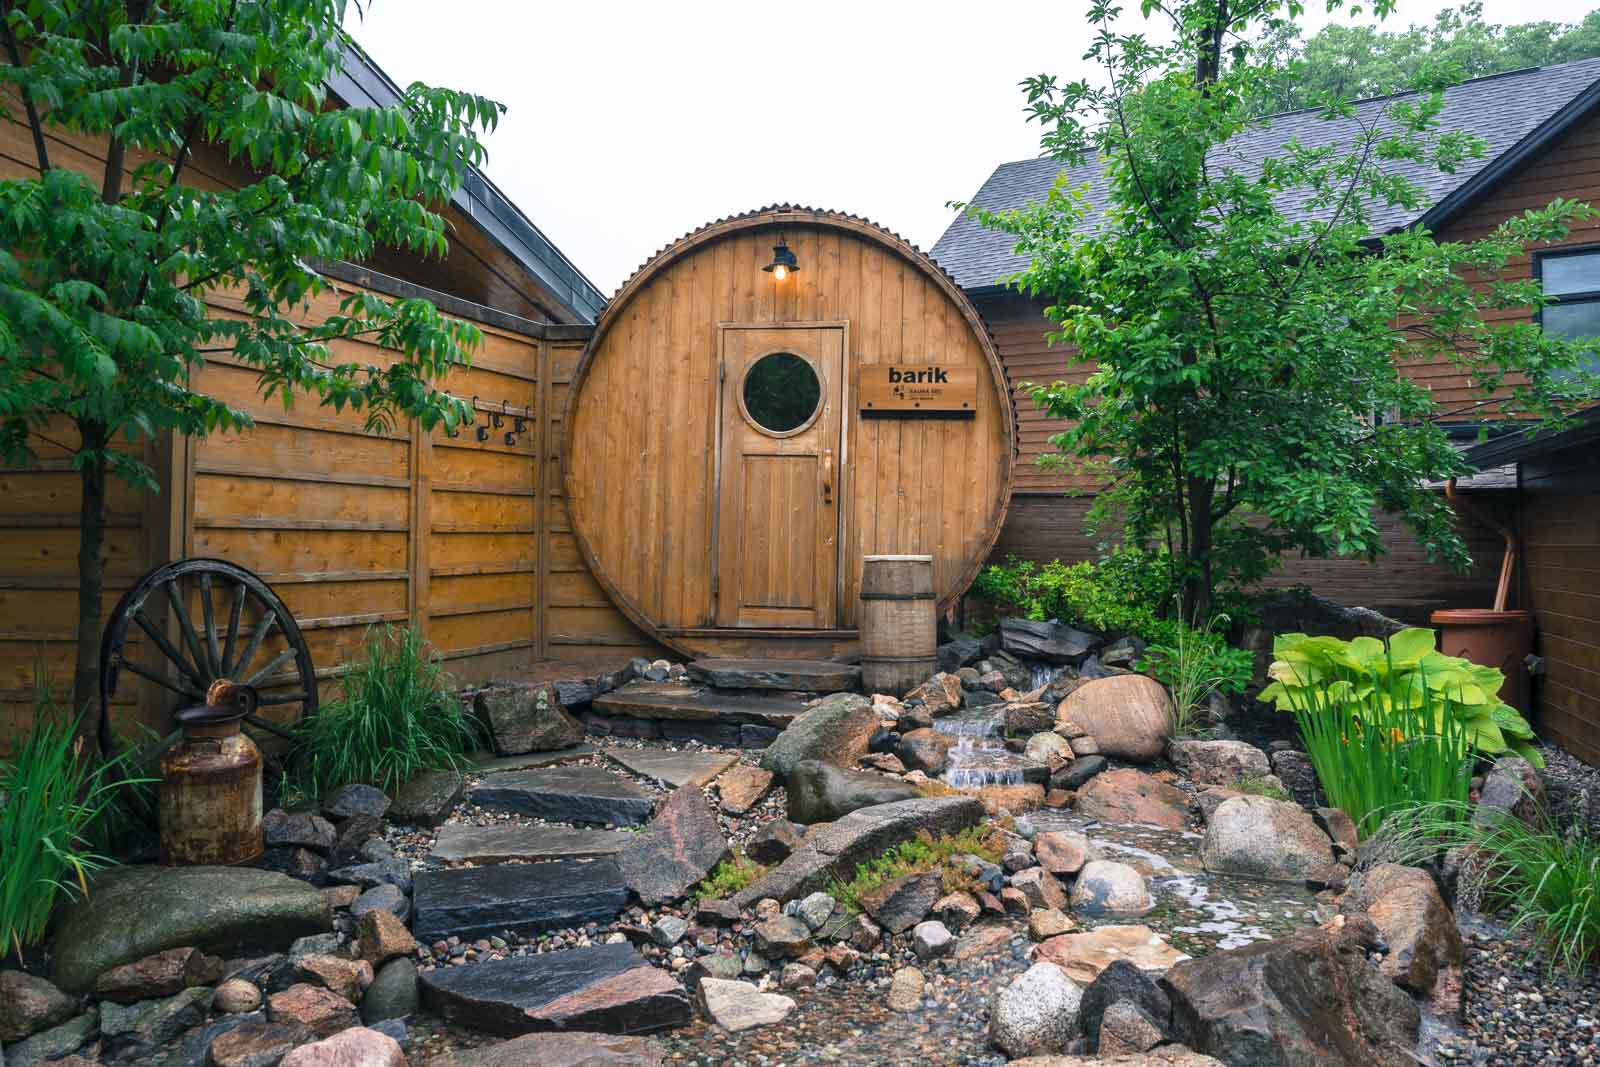 The Scandinave Spa in Quebec City